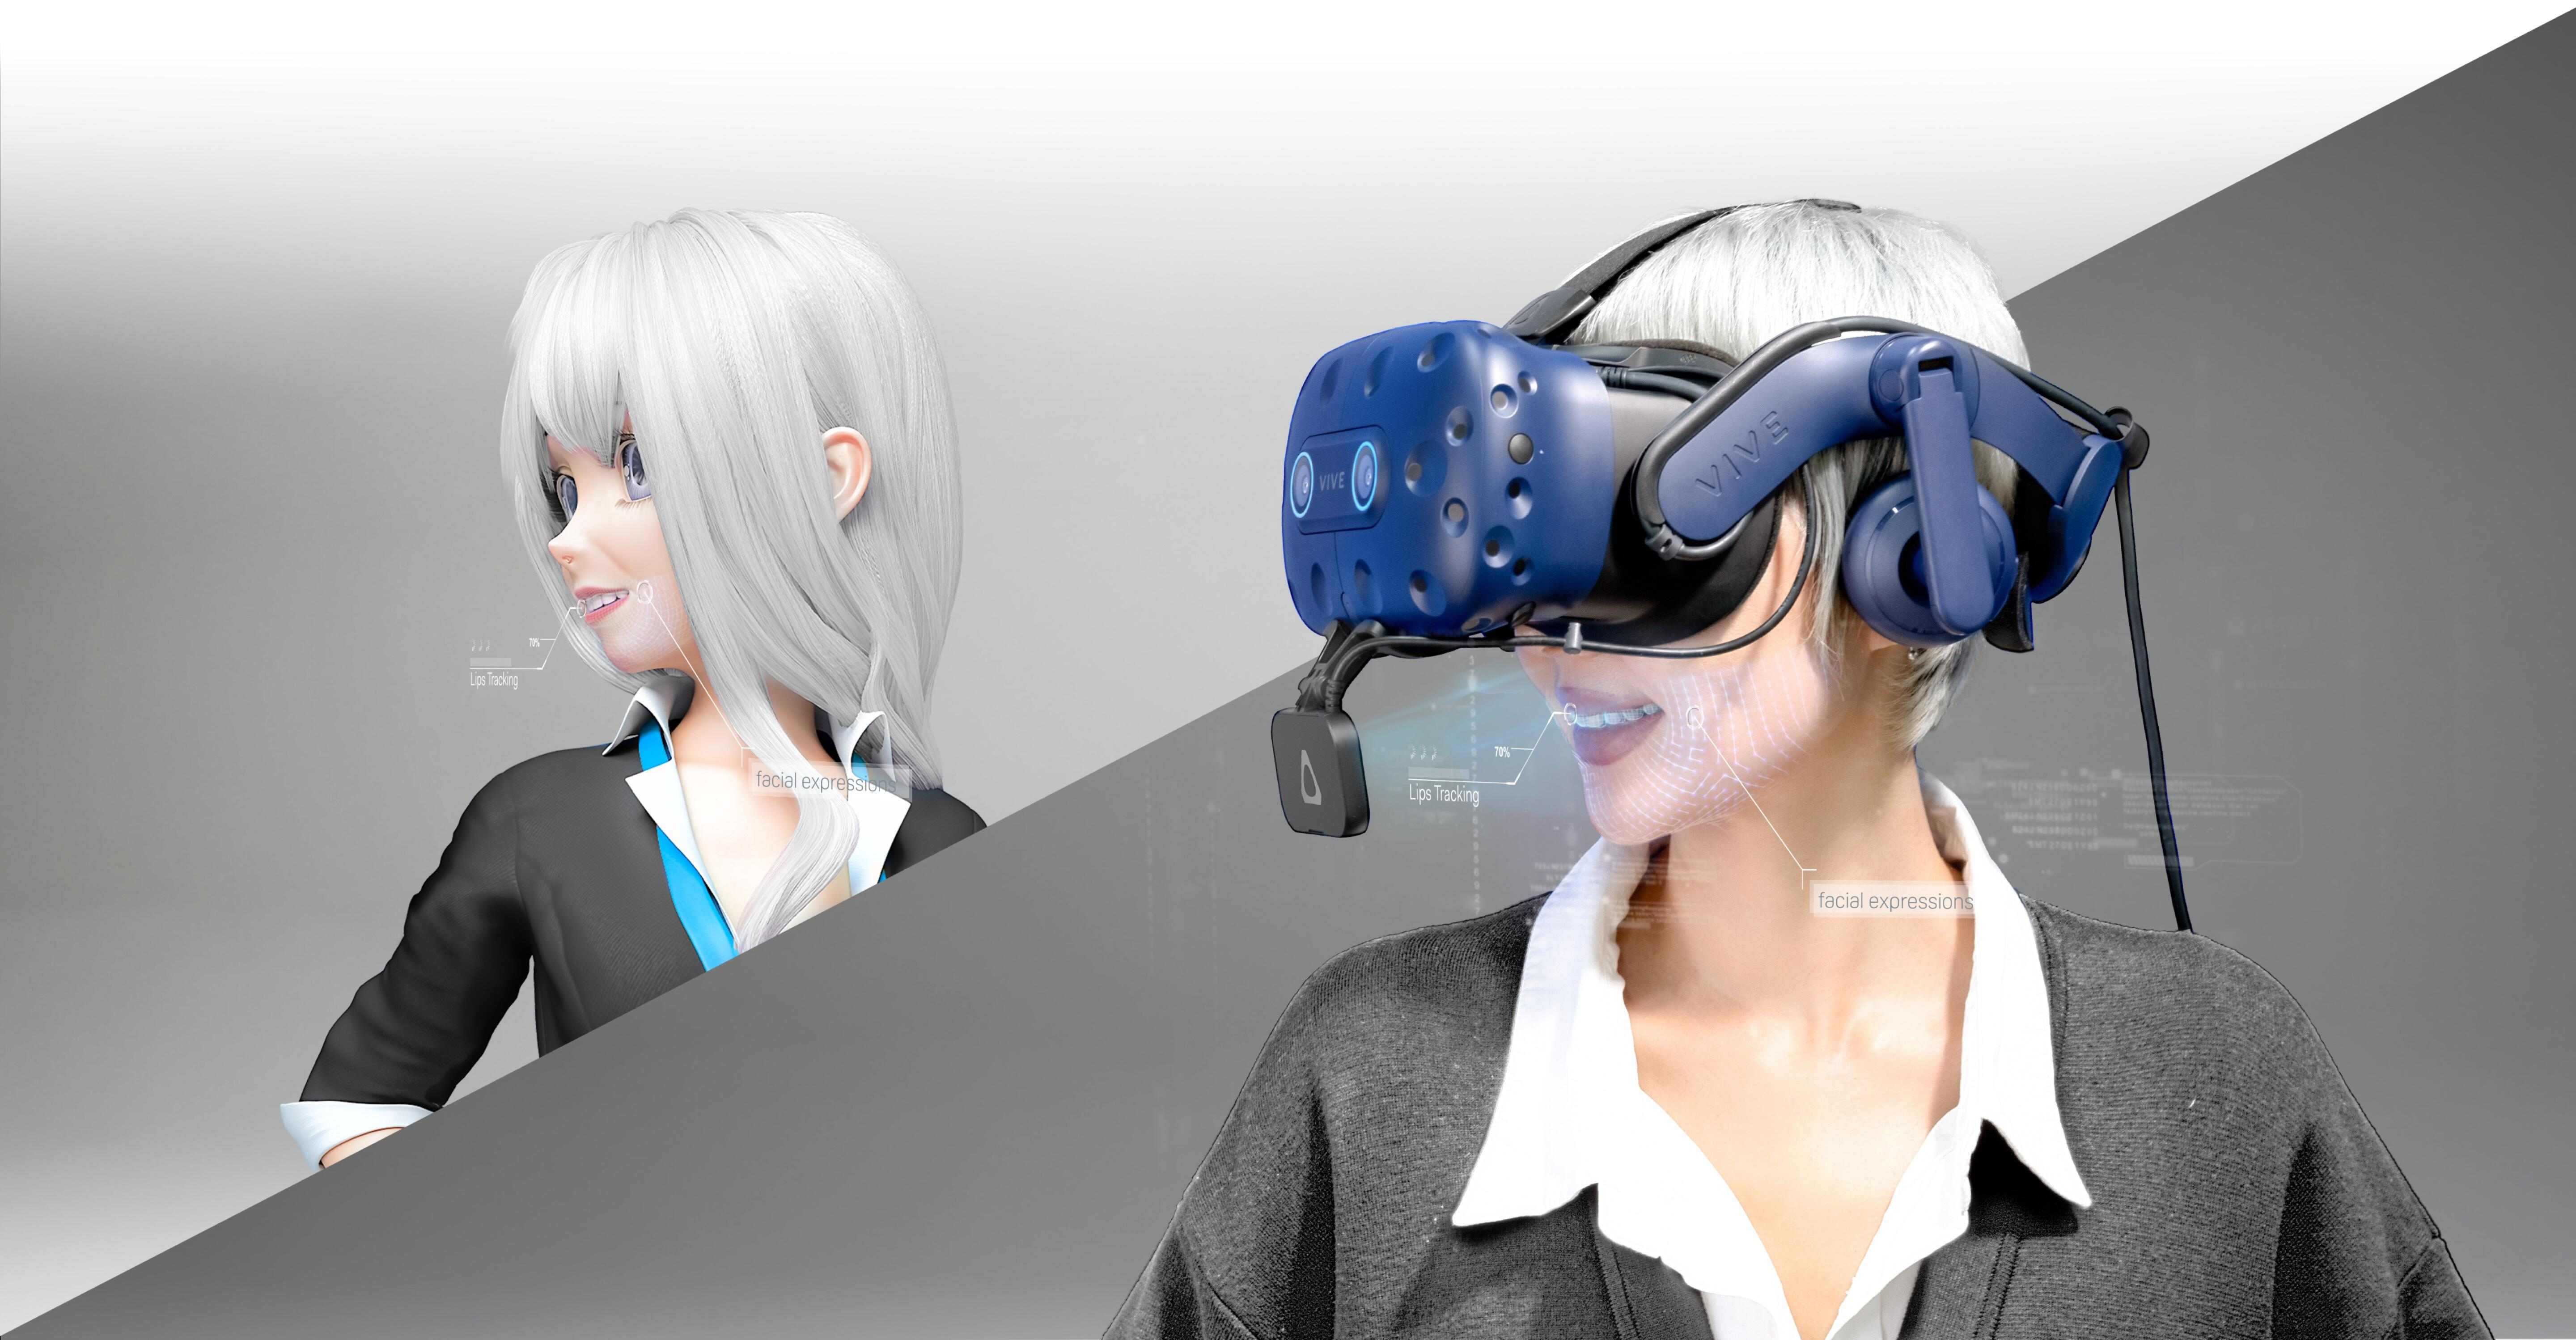 htc-vive-facial-tracker-being-worn